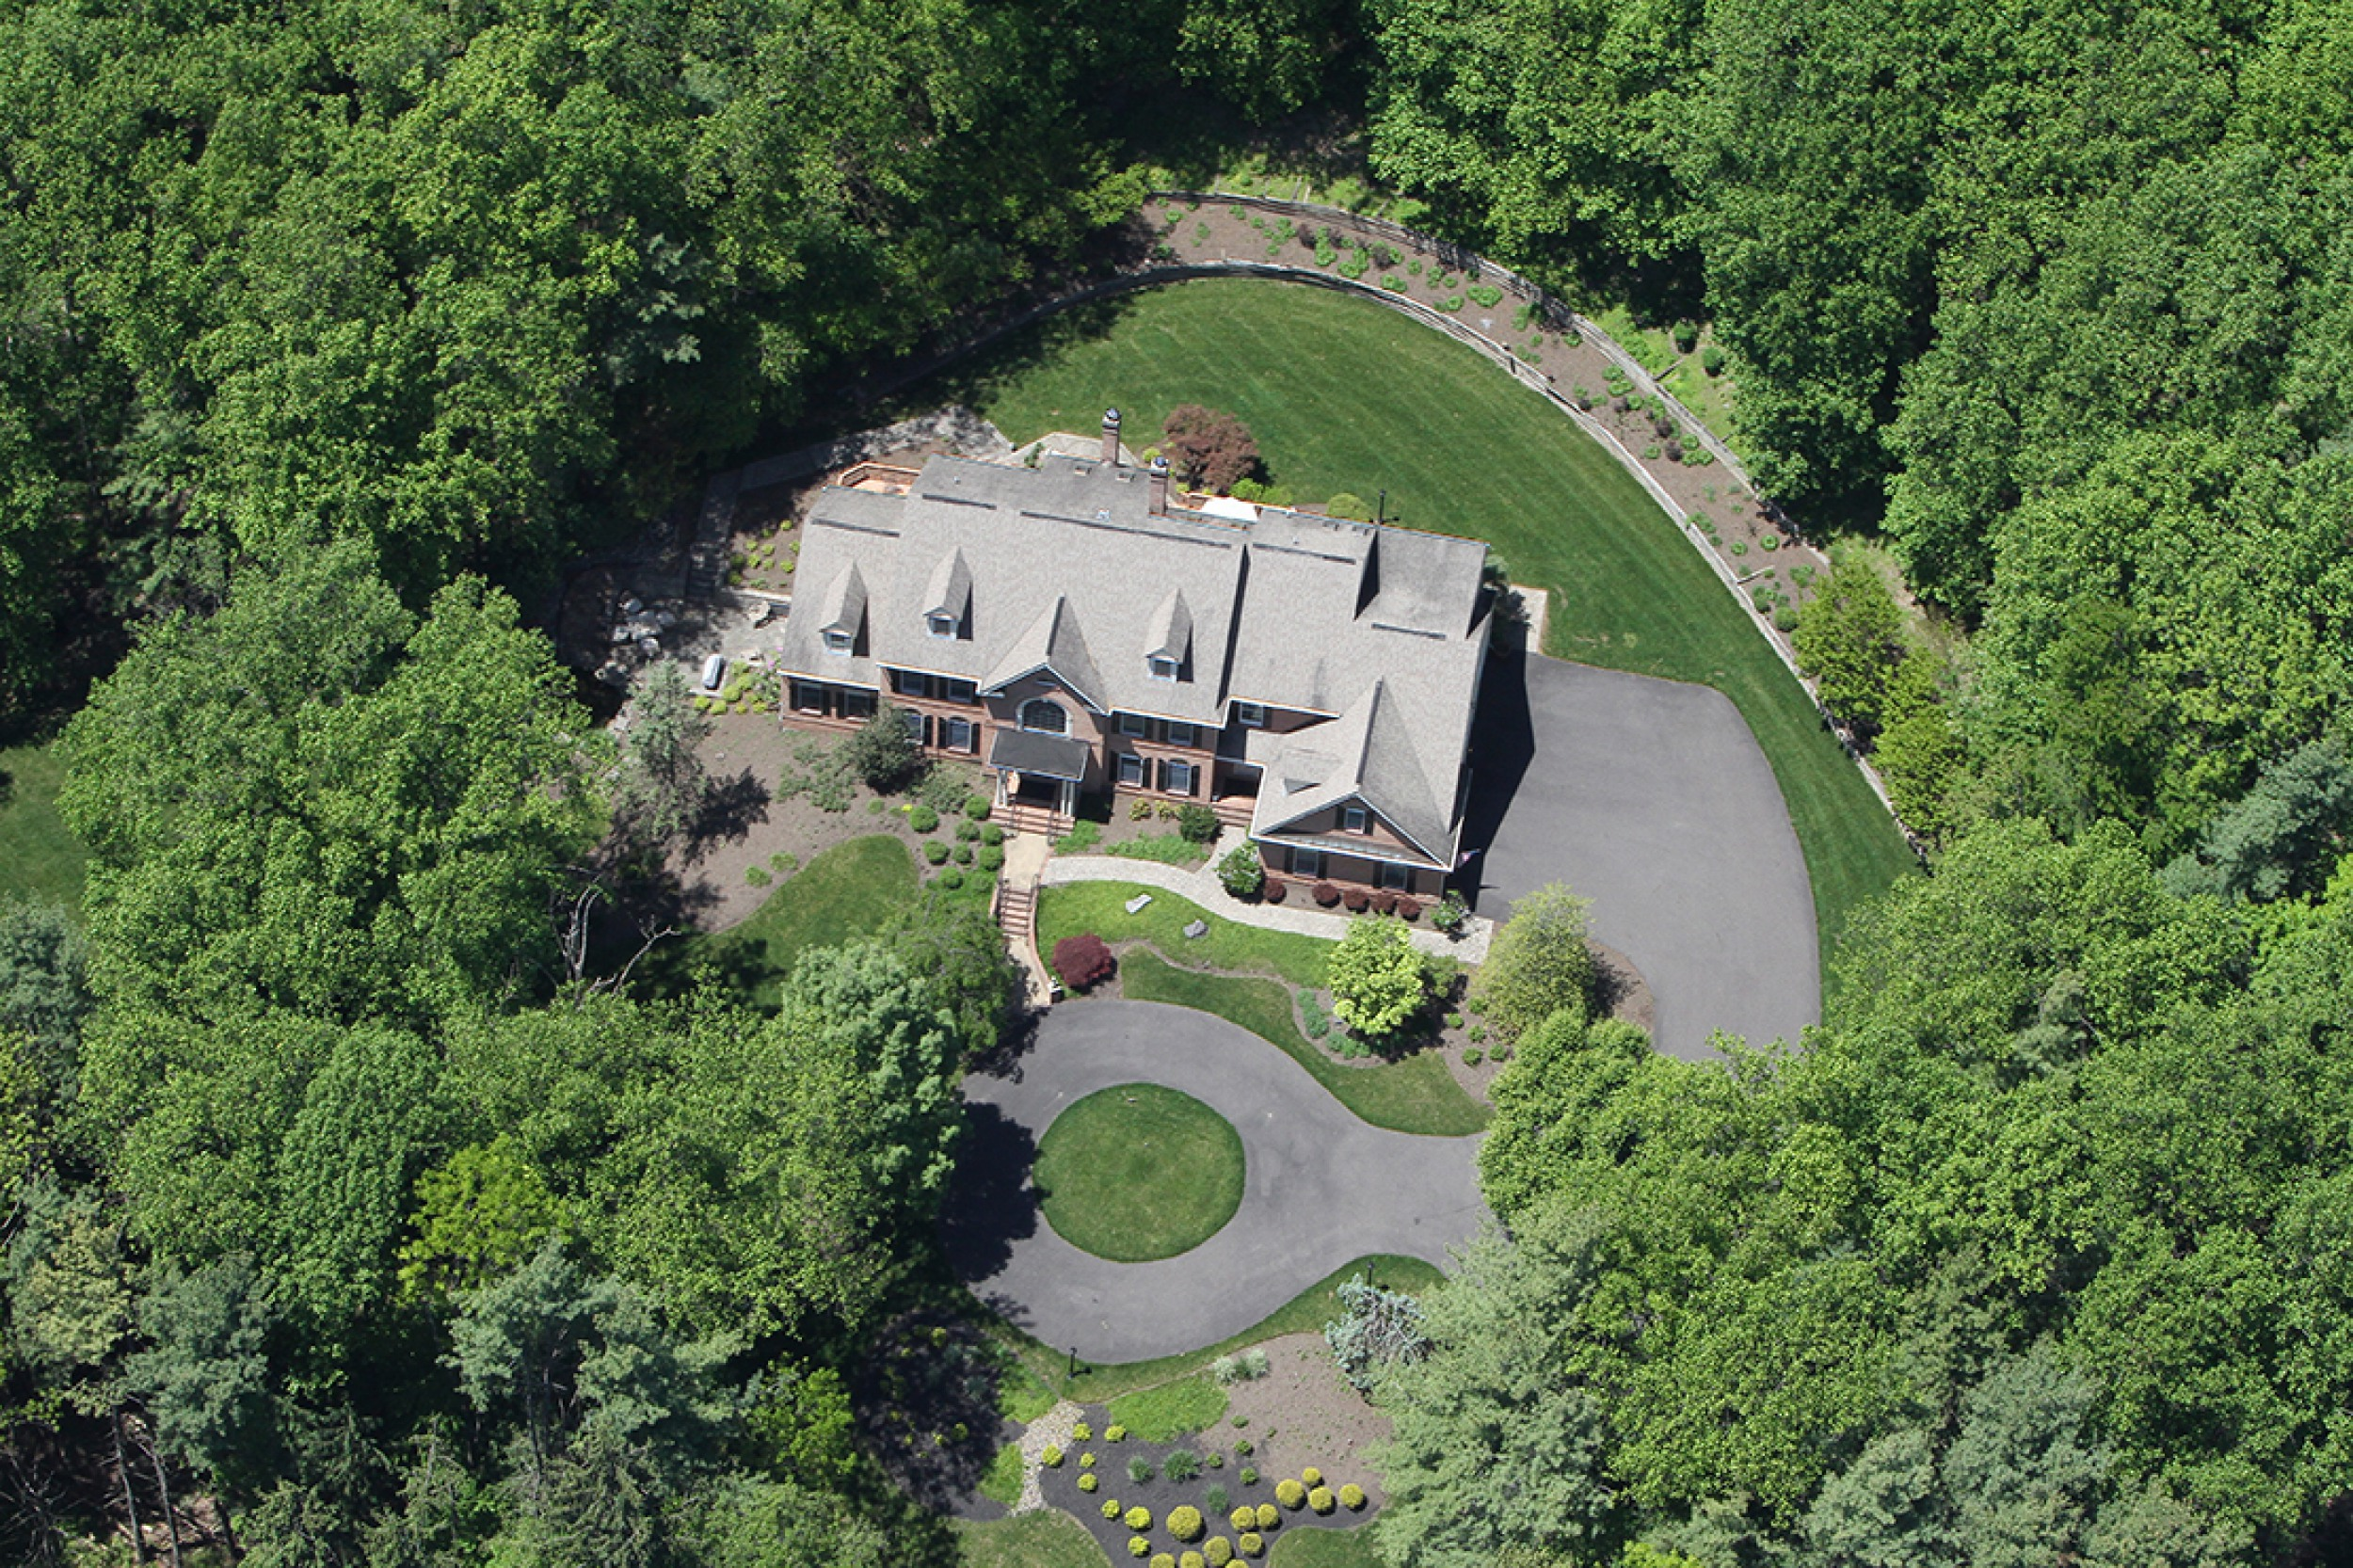 Single Family Home for Sale at Bellinghamshire Place 17 BELLINGHAMSHIRE PL New Hope, Pennsylvania, 18938 United States